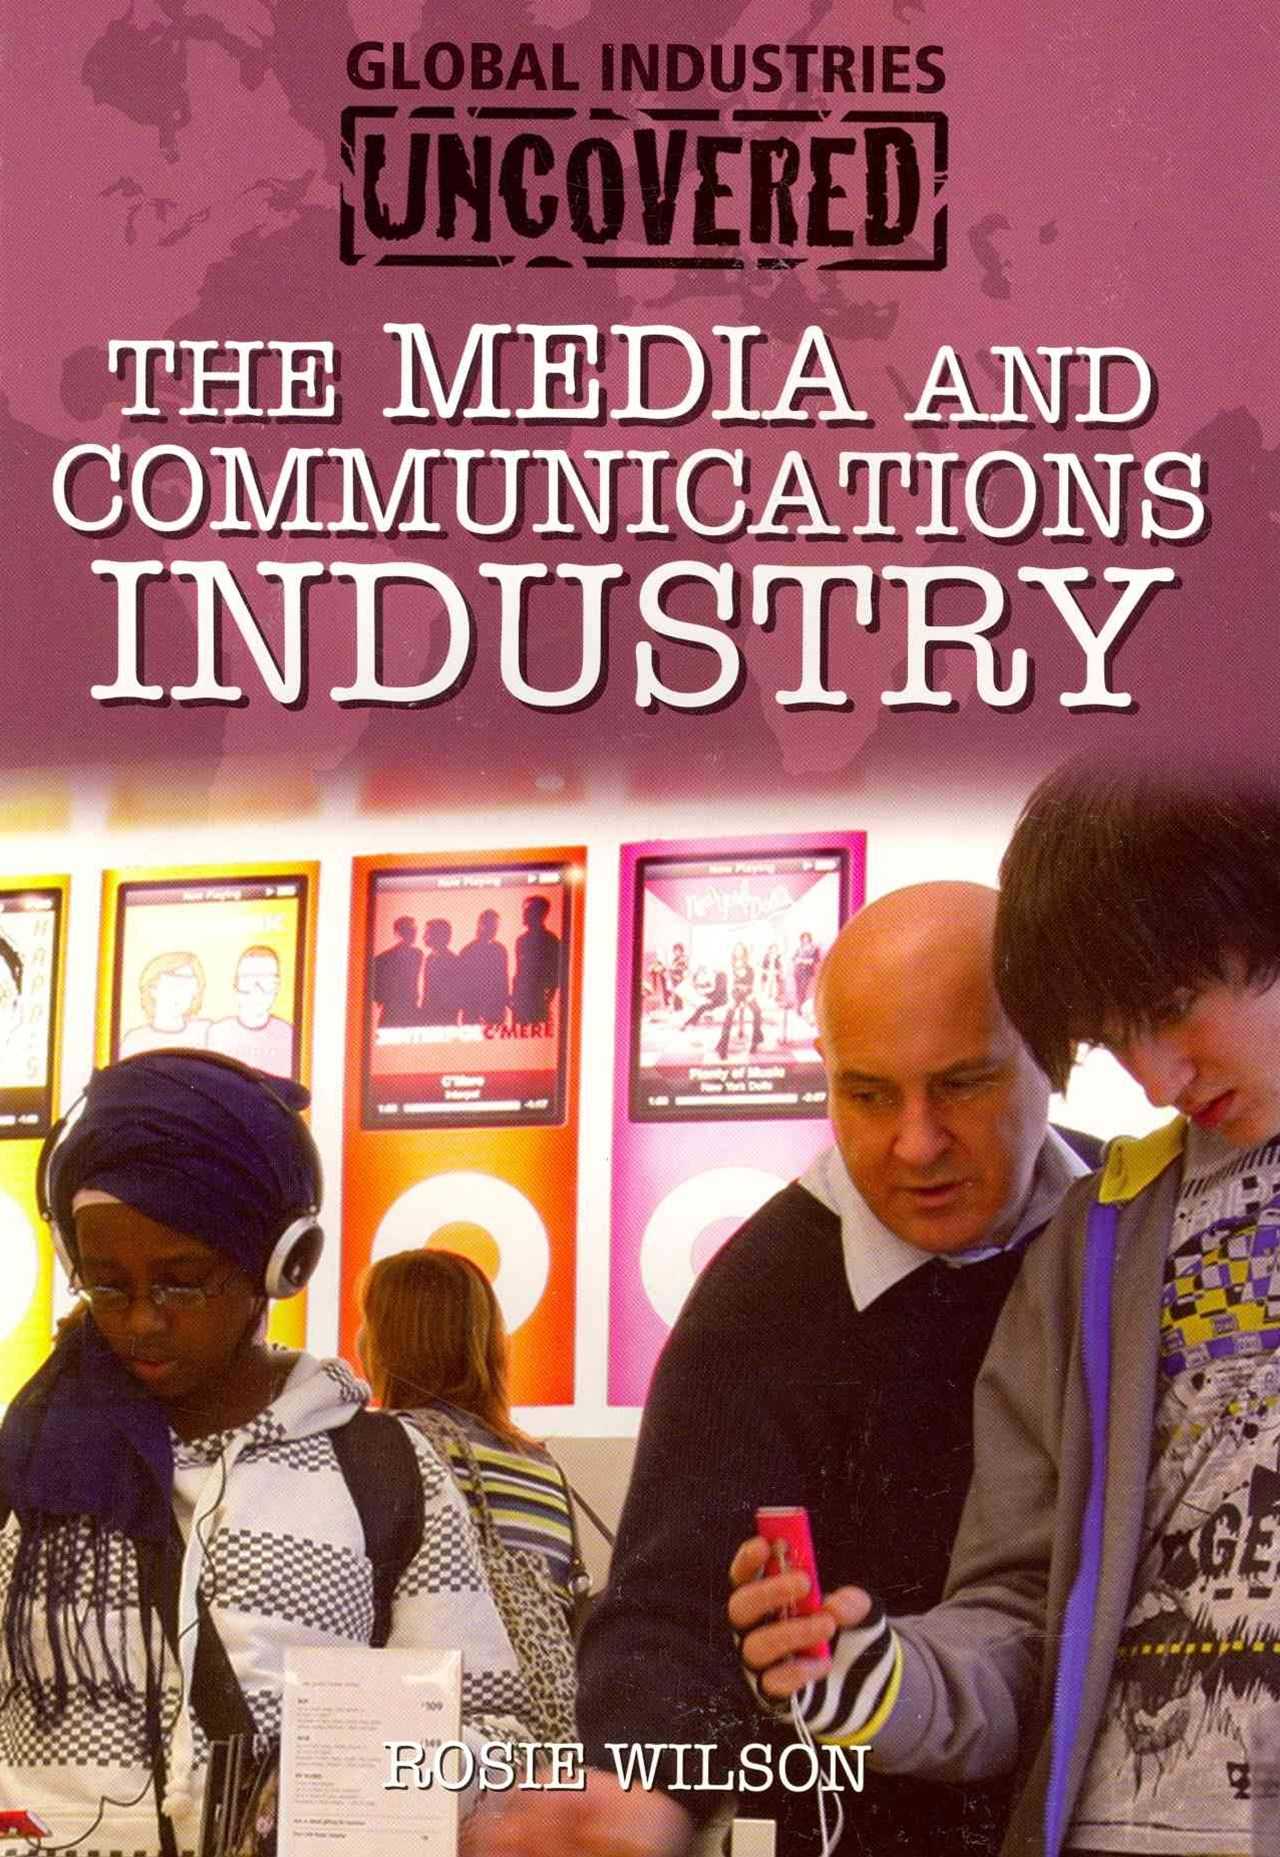 Global Industries Uncovered: The Media and Communications Industry